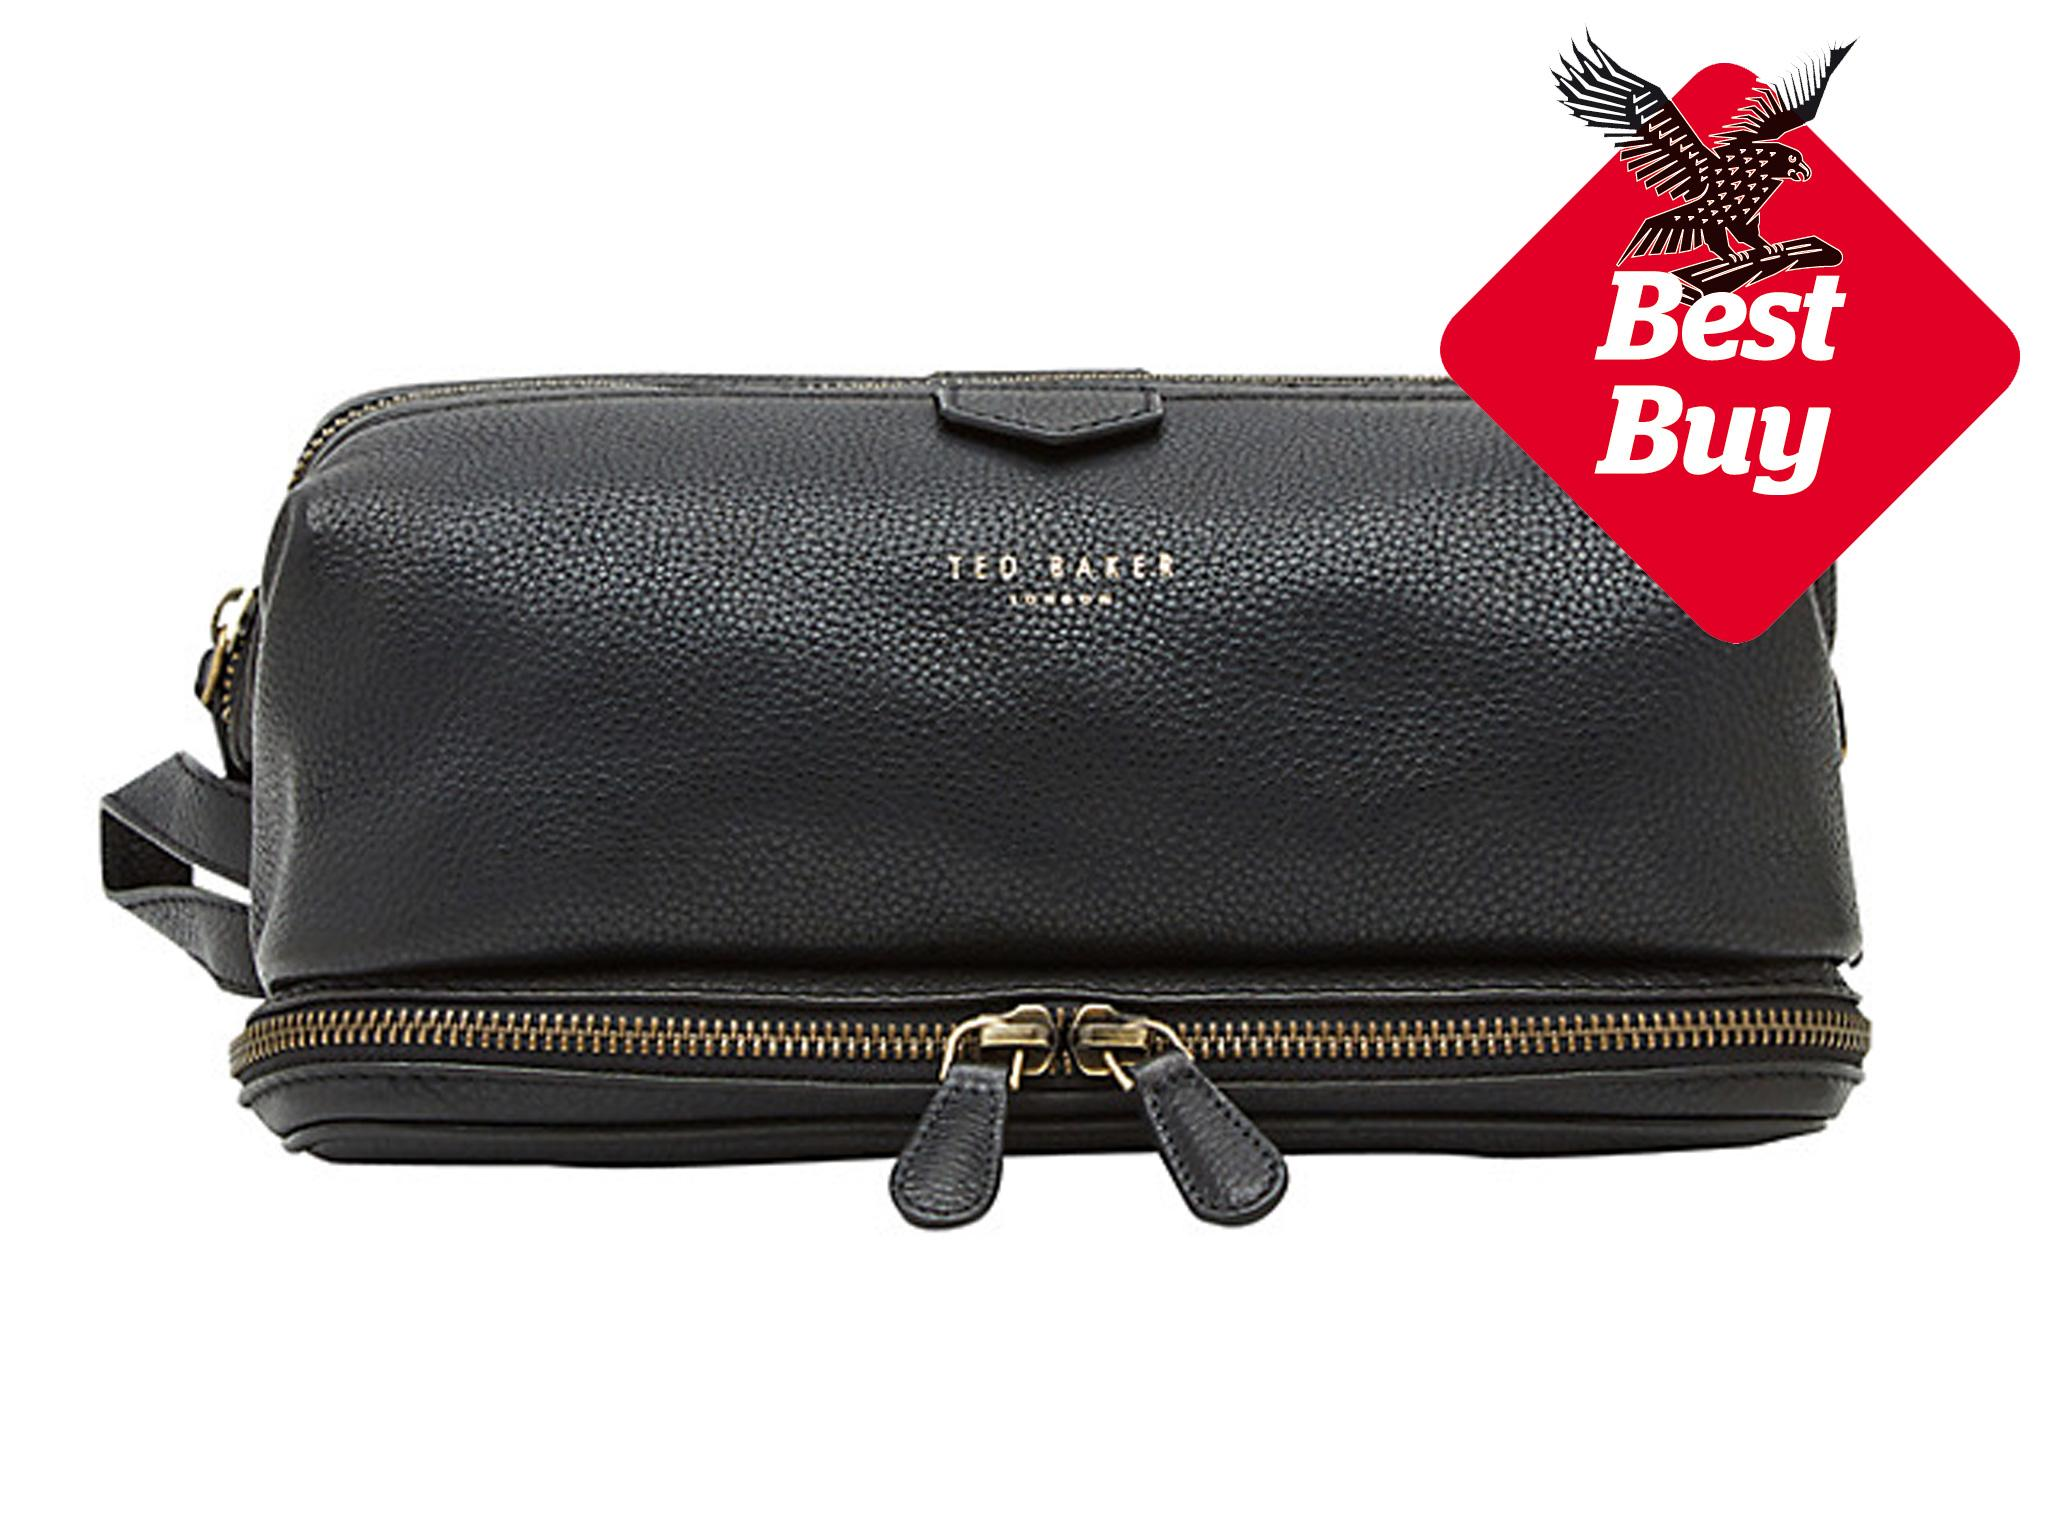 875fe615f8f6 Ted Baker Lanclot Pebble Grain Leather Wash Bag  £65